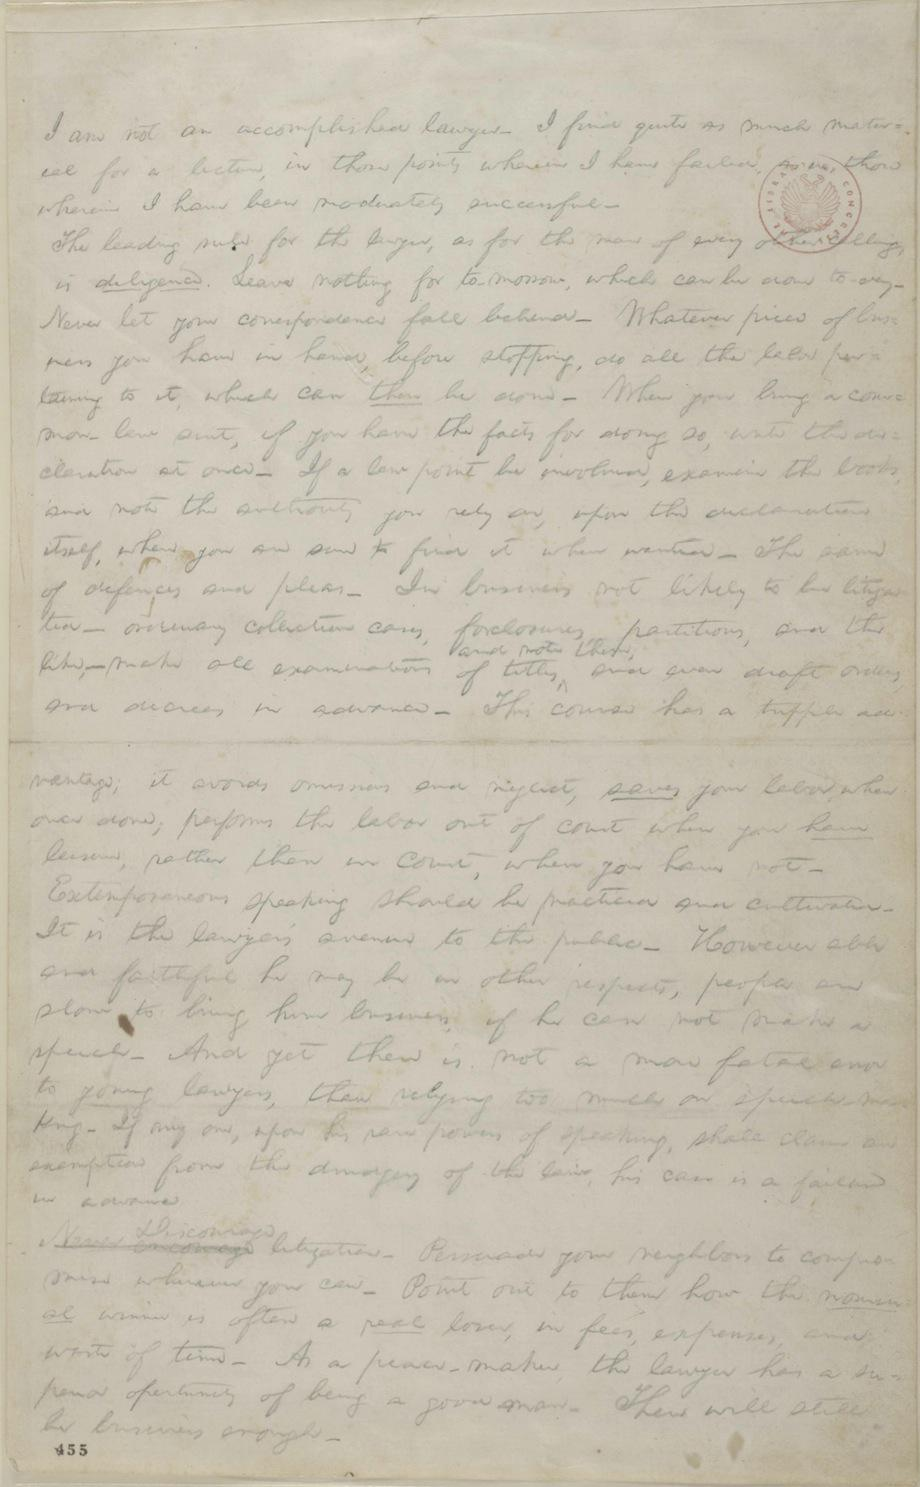 Lincoln's notes for a lecture on law